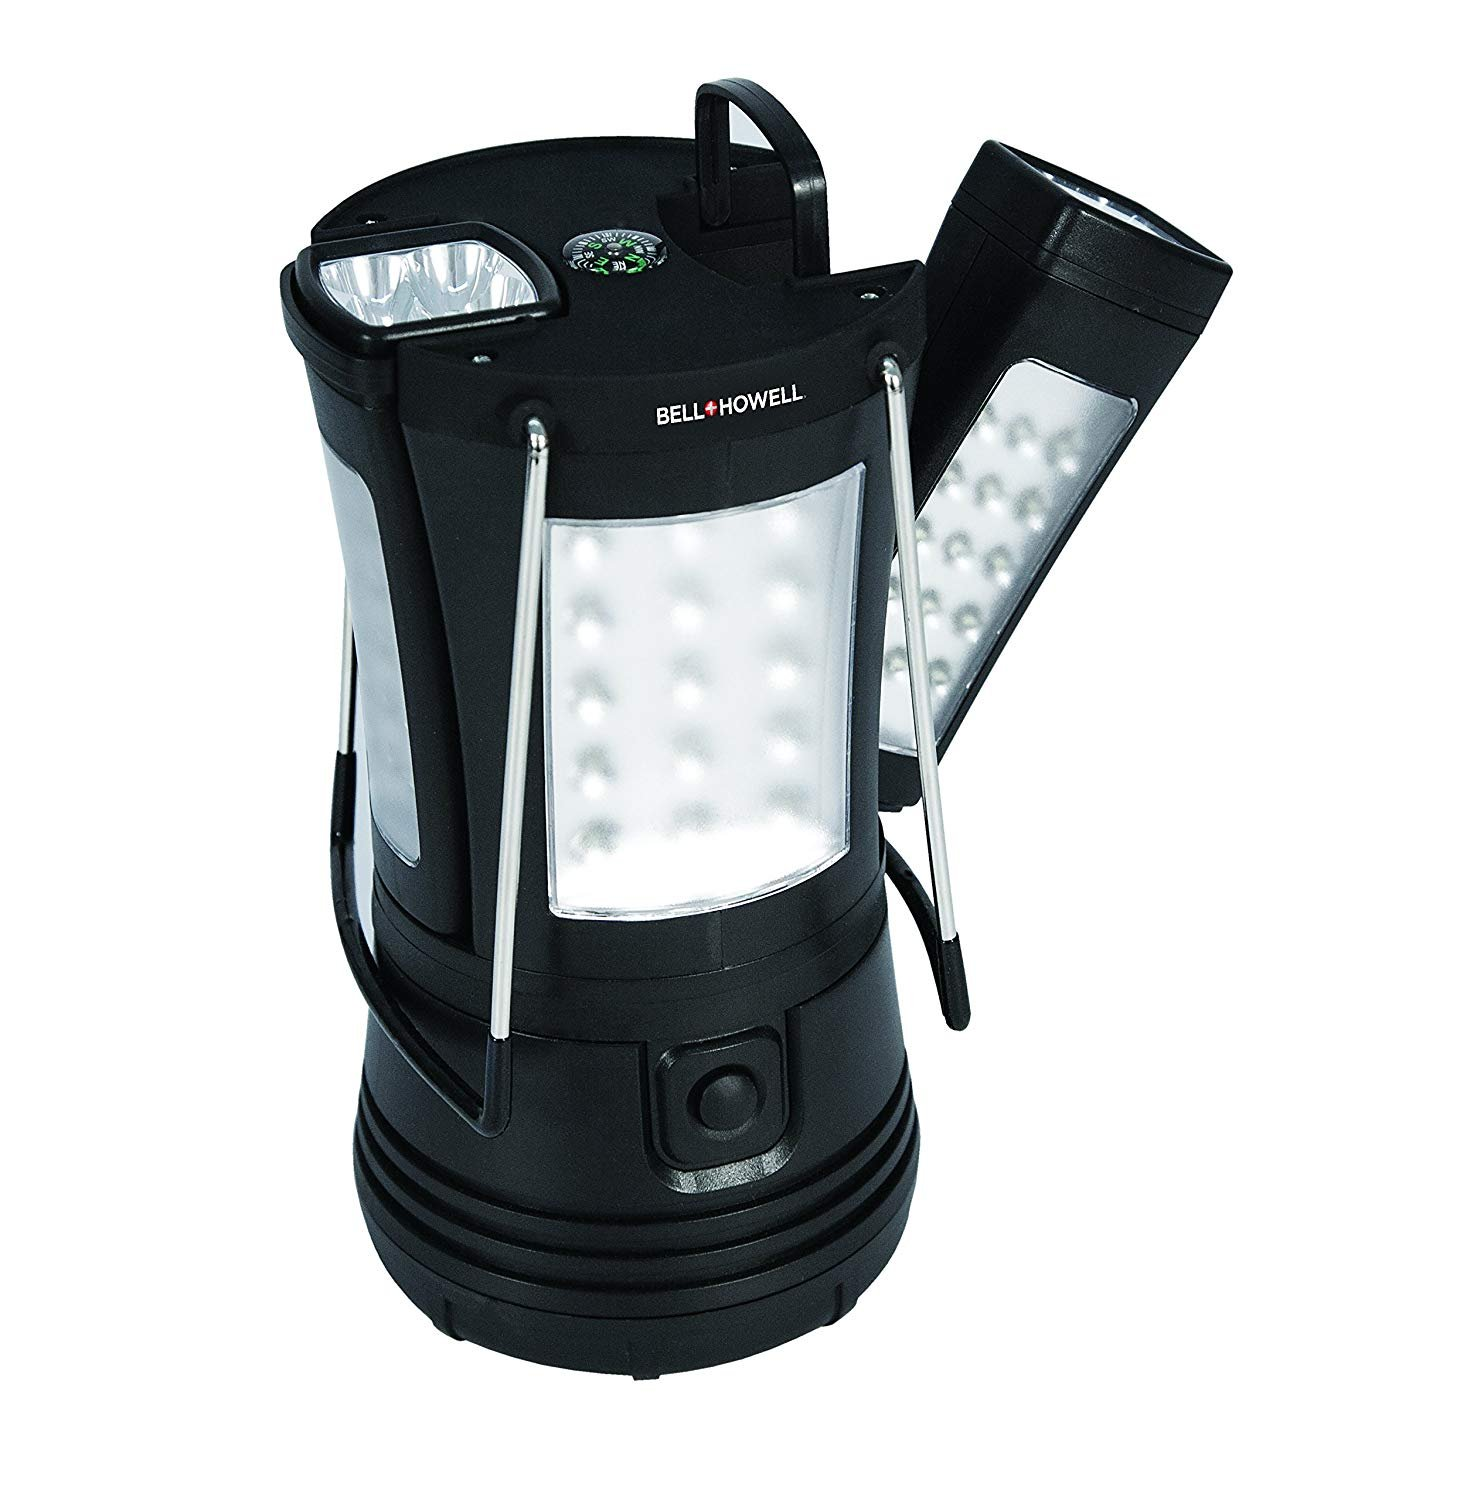 bell   howell super torch lantern with 2 flashlights